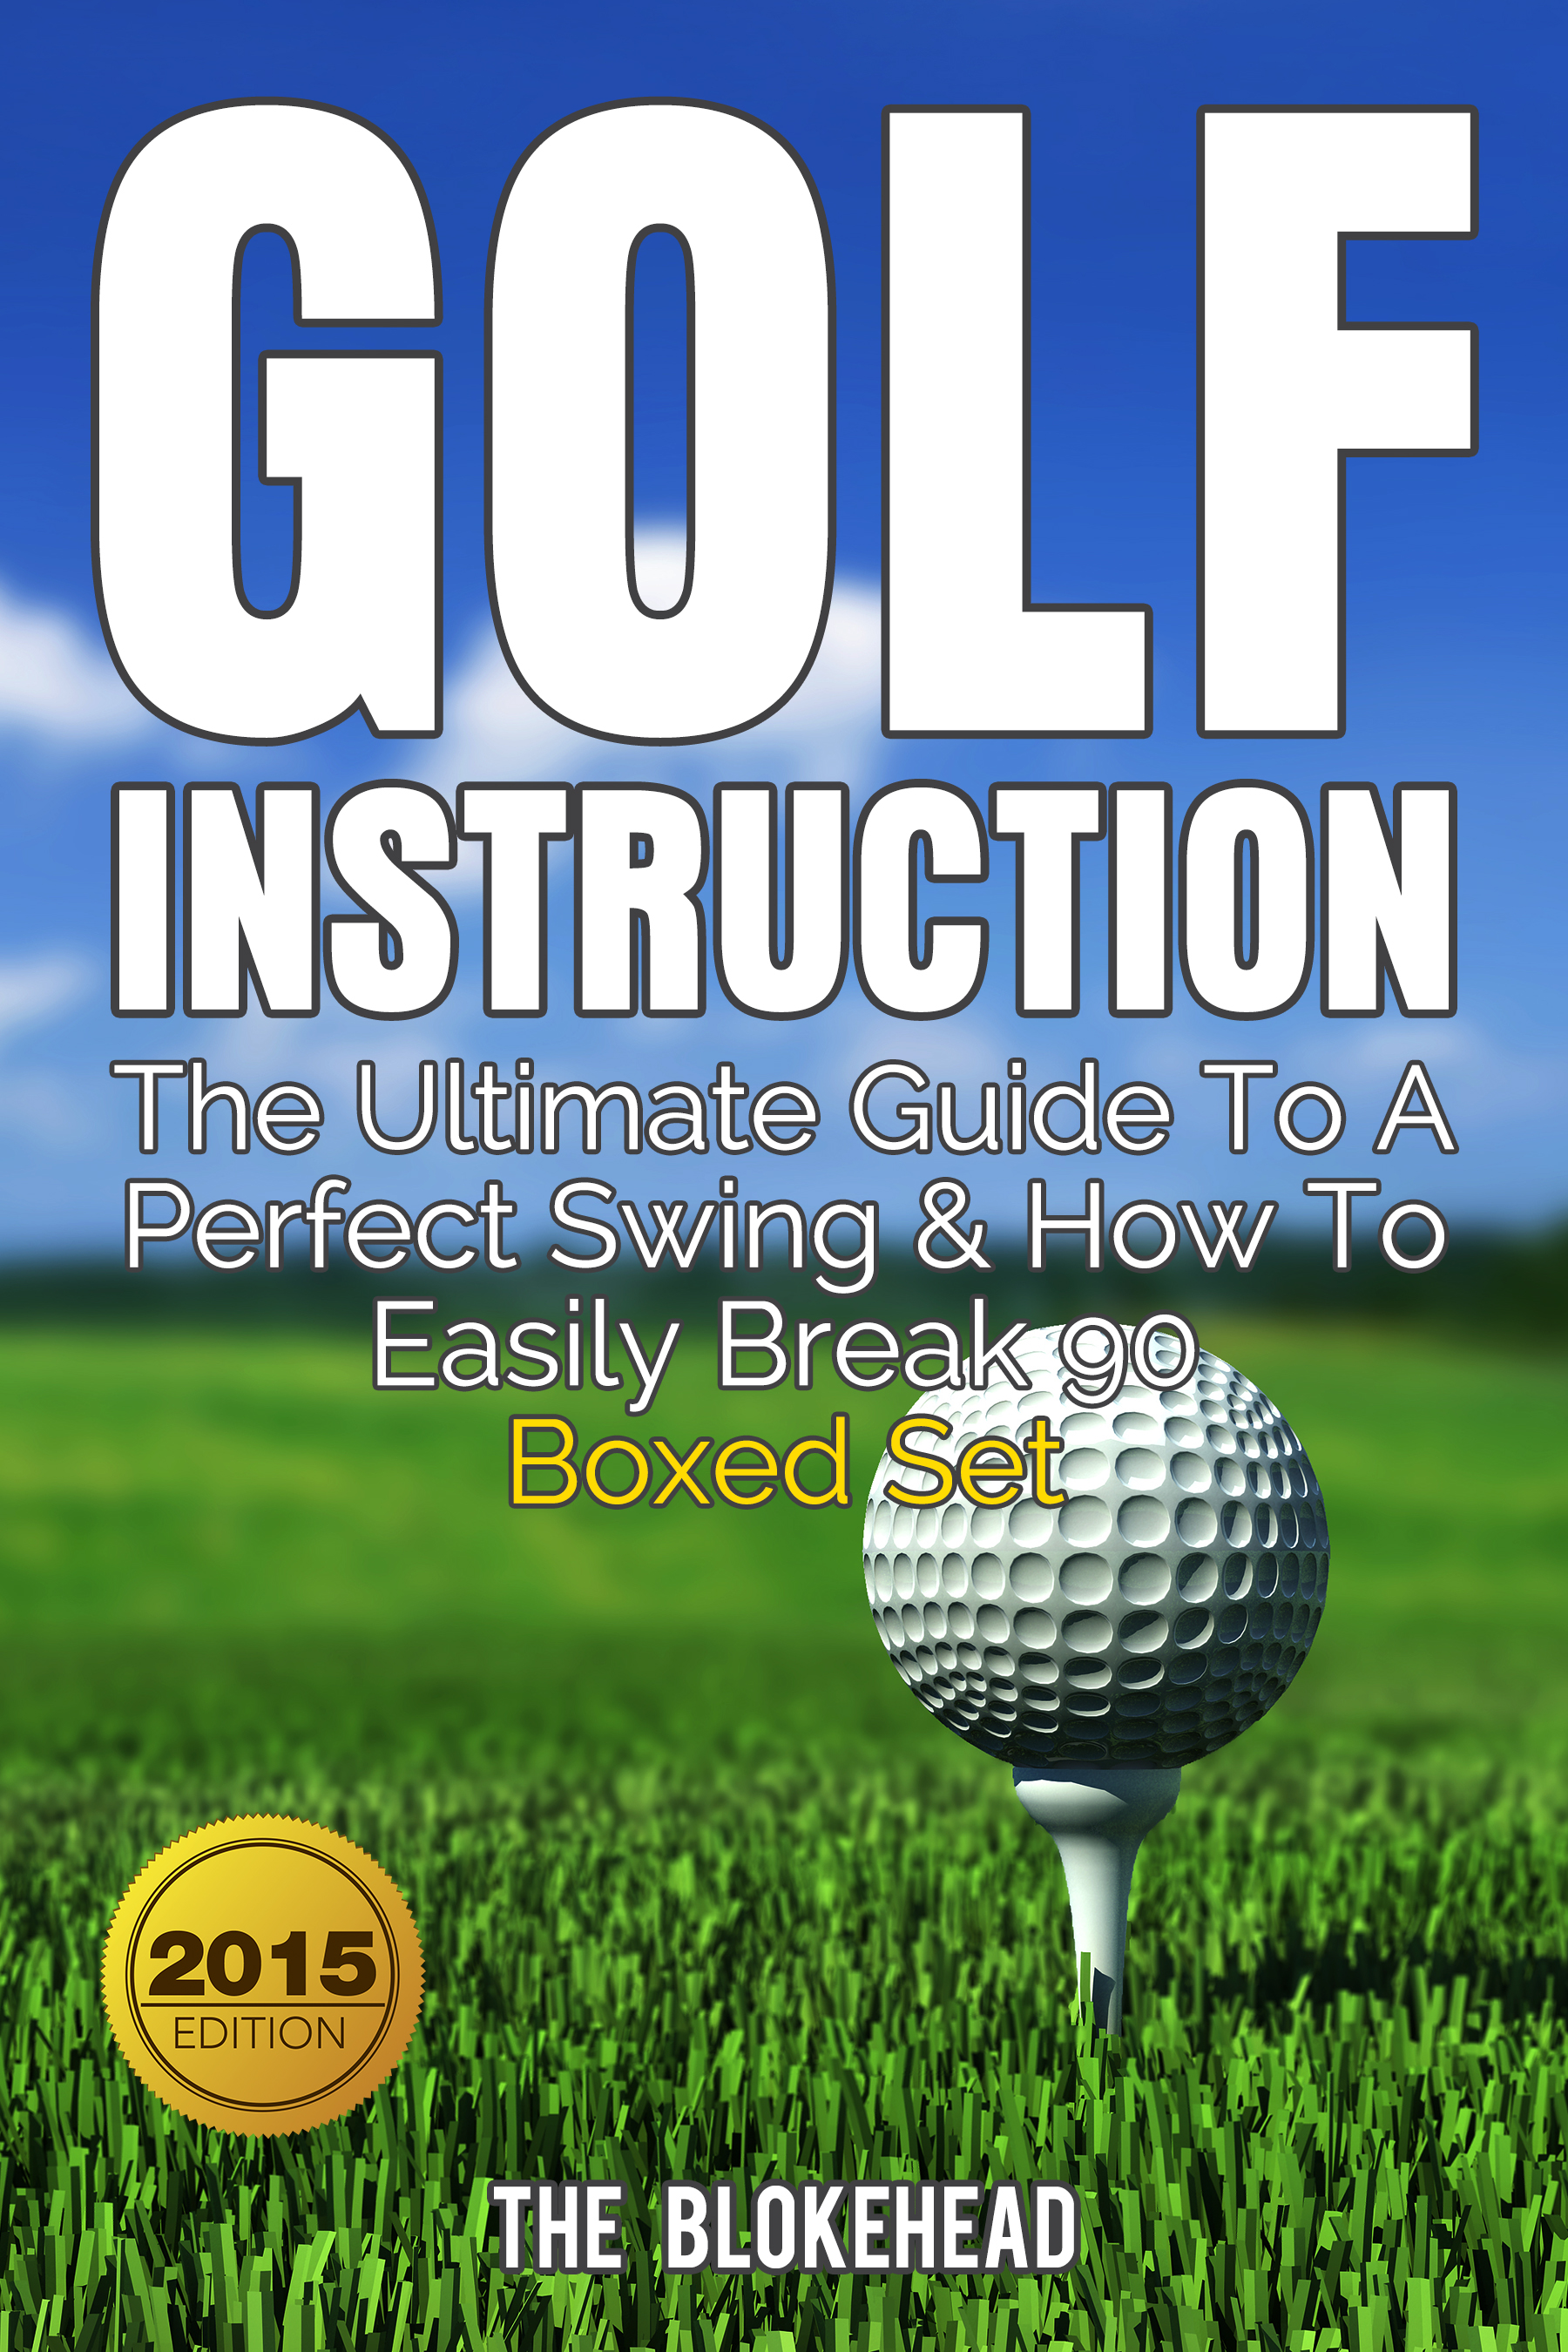 Golf instruction : the ultimate guide to a perfect swing & how to easily break 90 boxed set